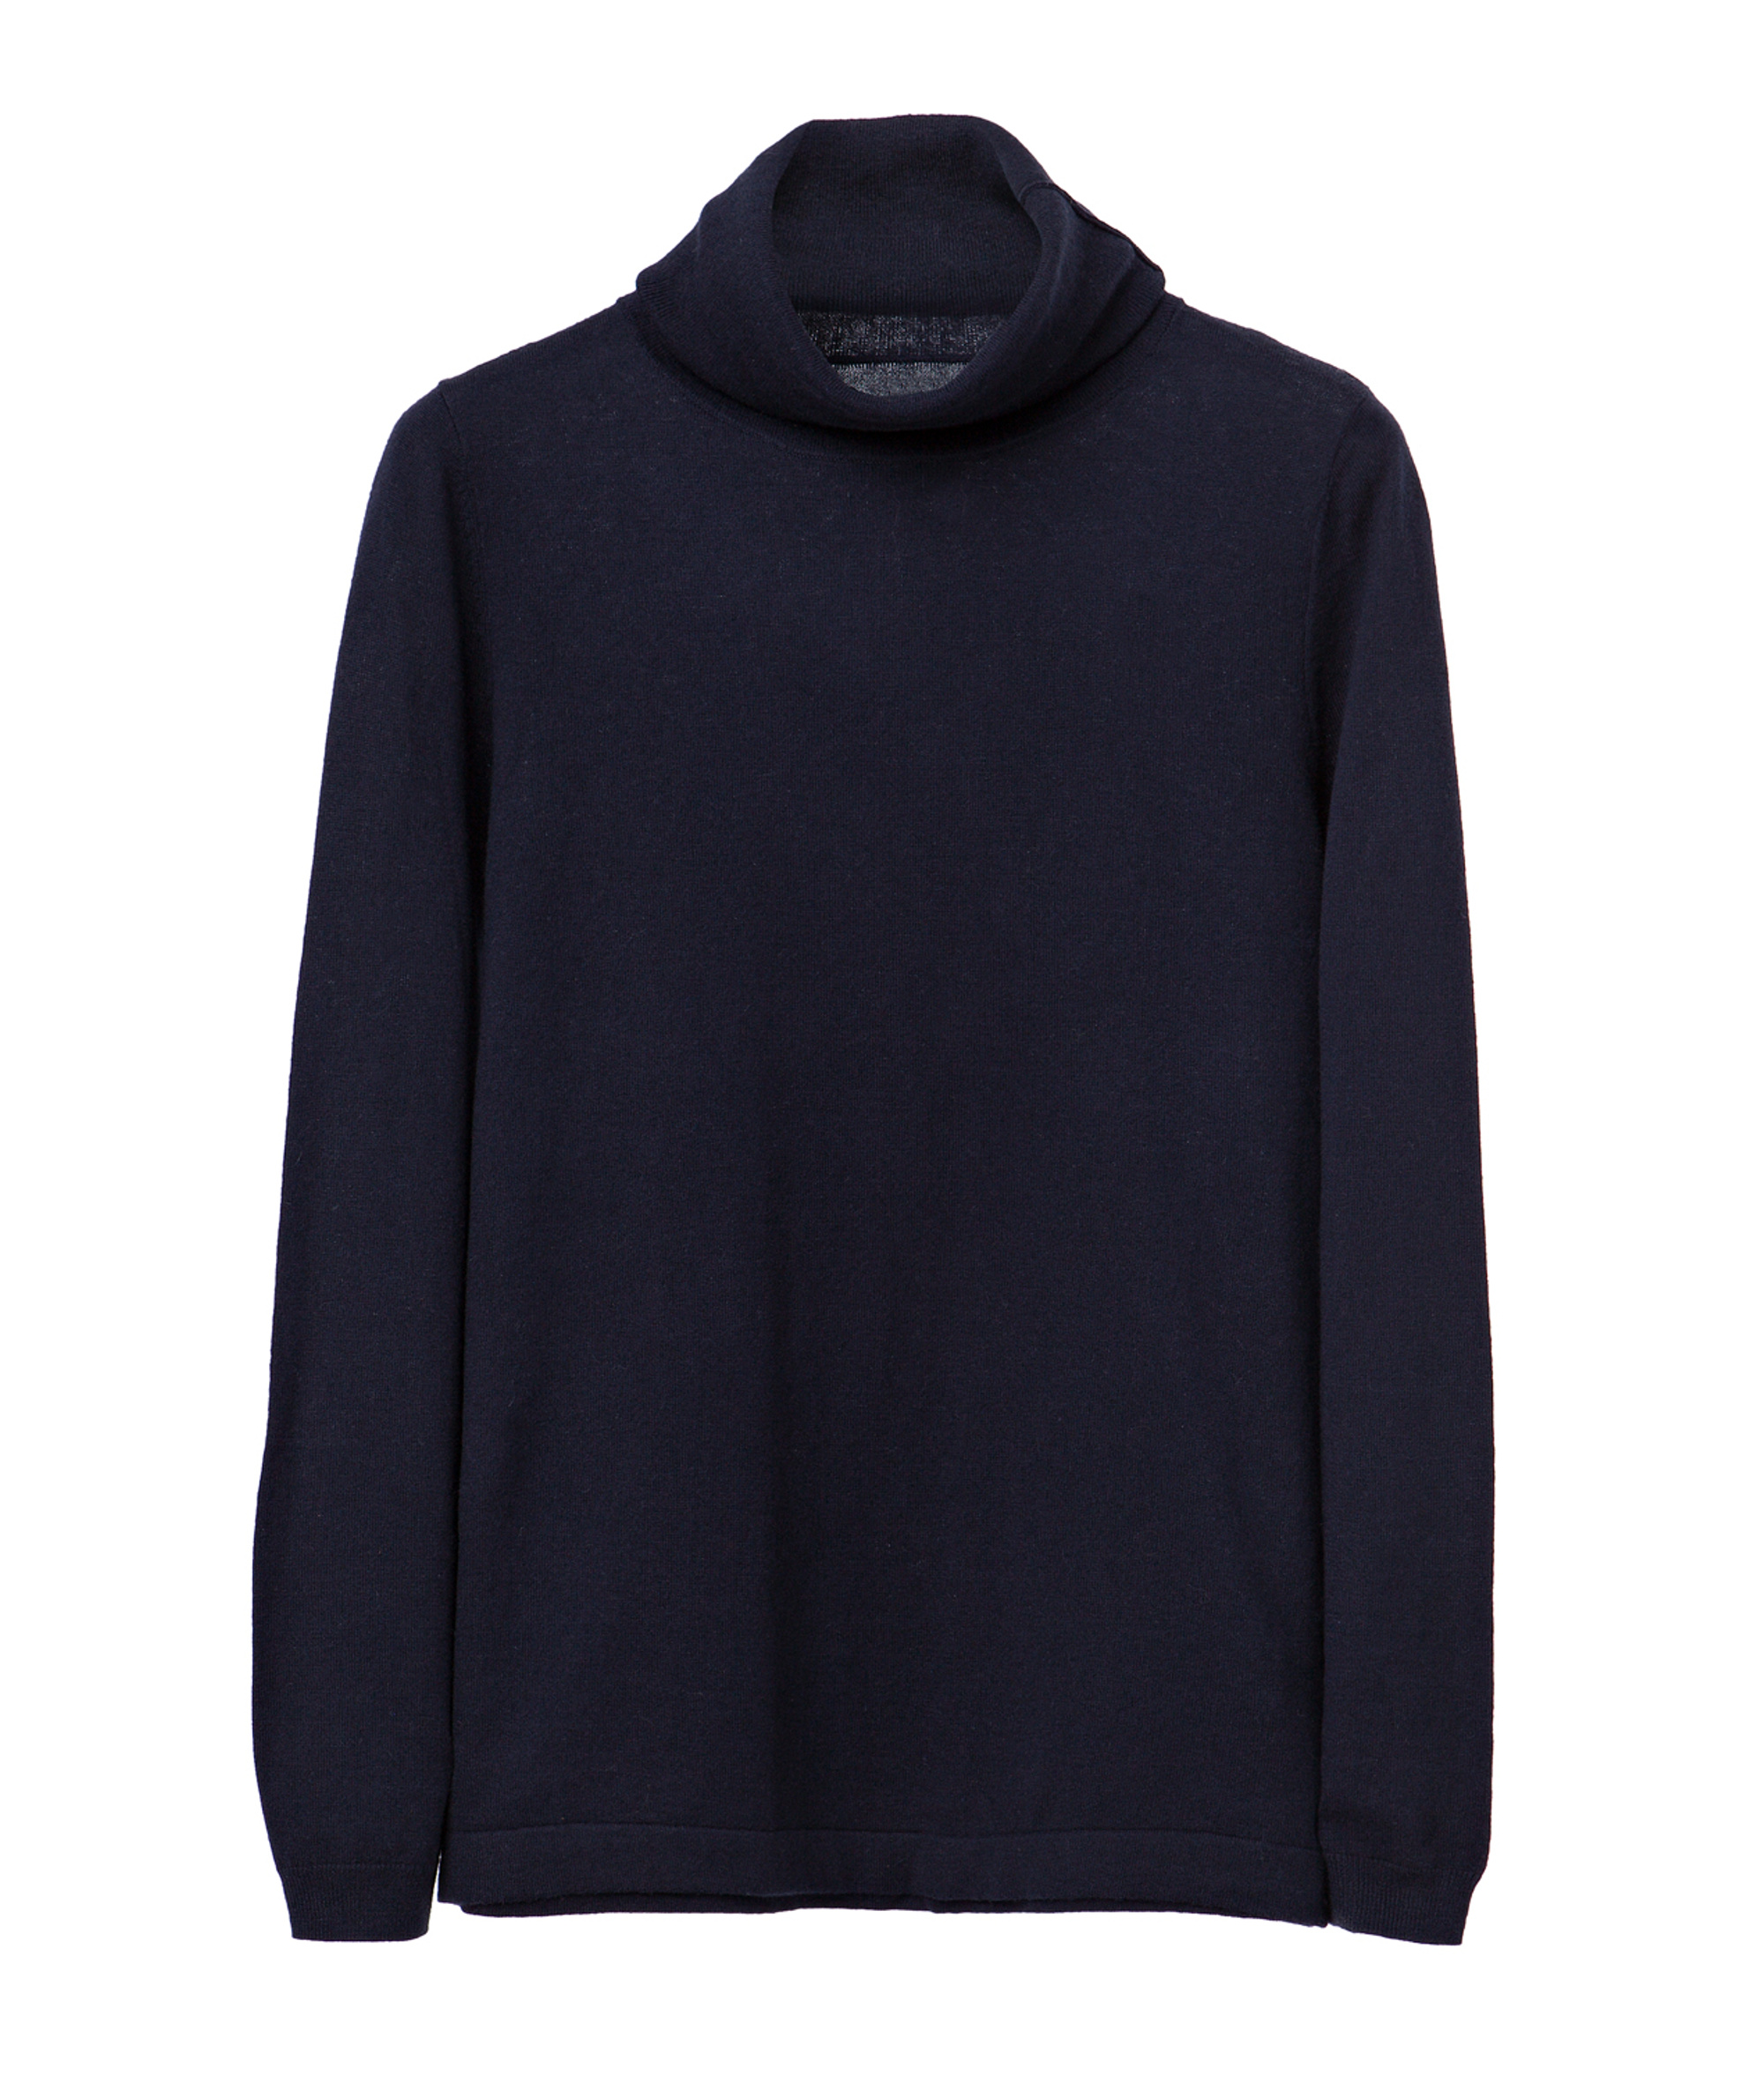 Roll Neck Sweater, Deep Marine Blue